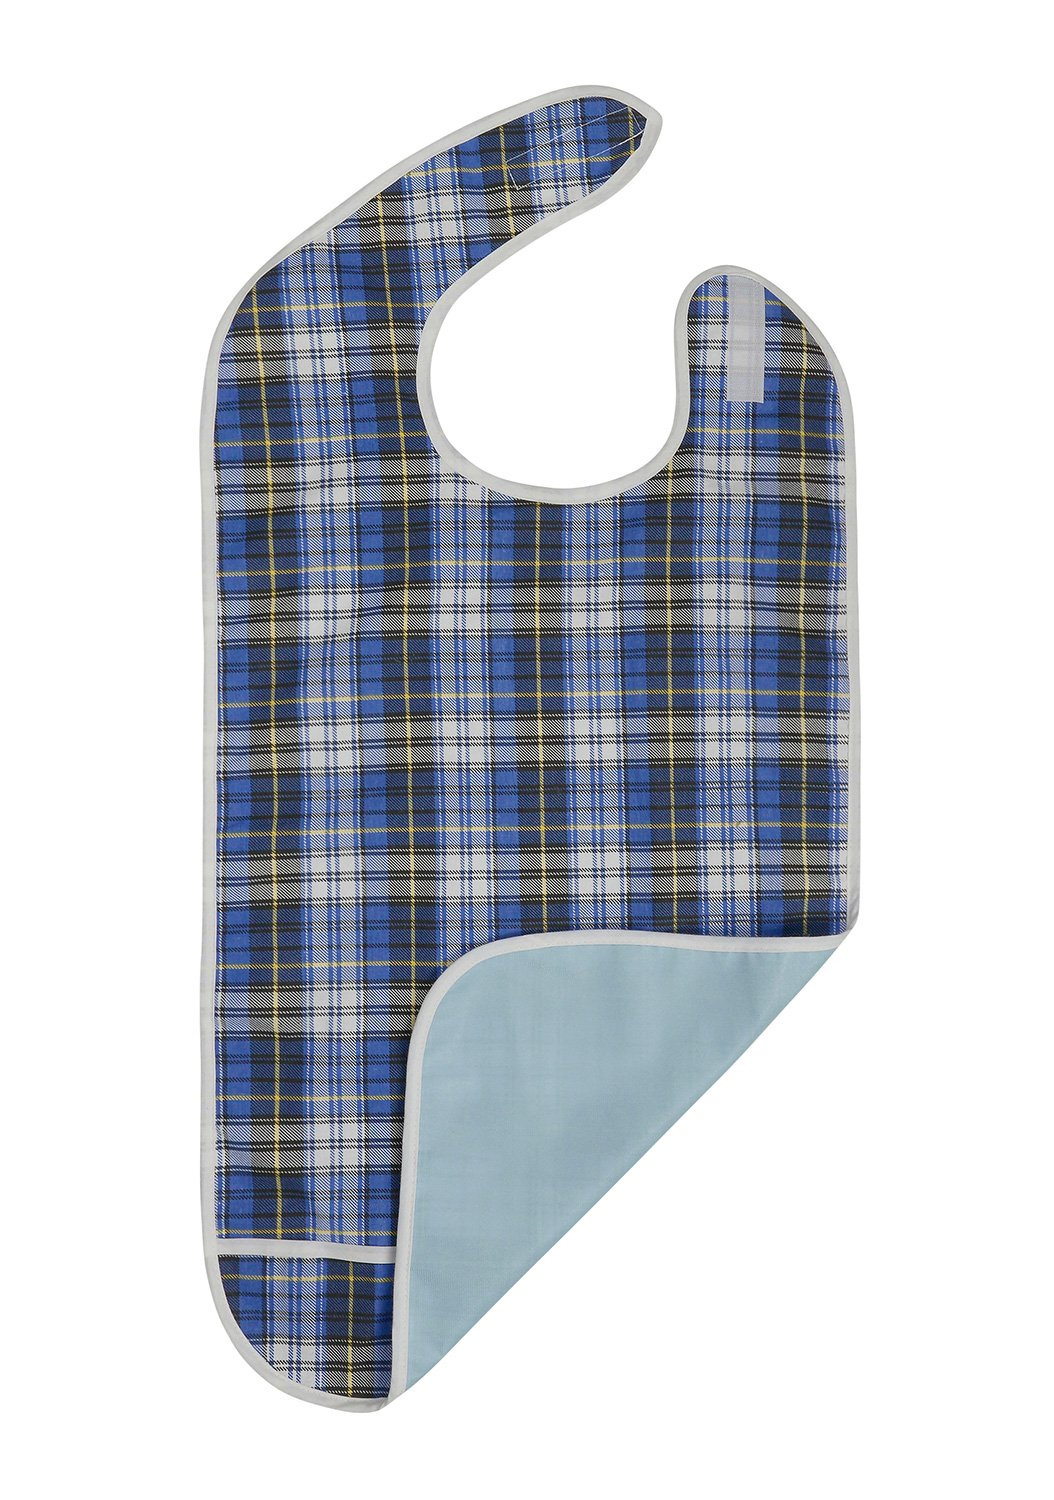 Adult Bib - Reusable Clothing Protector - Waterproof - Crumb Catcher - Machine Washable - Extra Long Senior Men and Women Bibs for Eating by Modaliv (Blue)